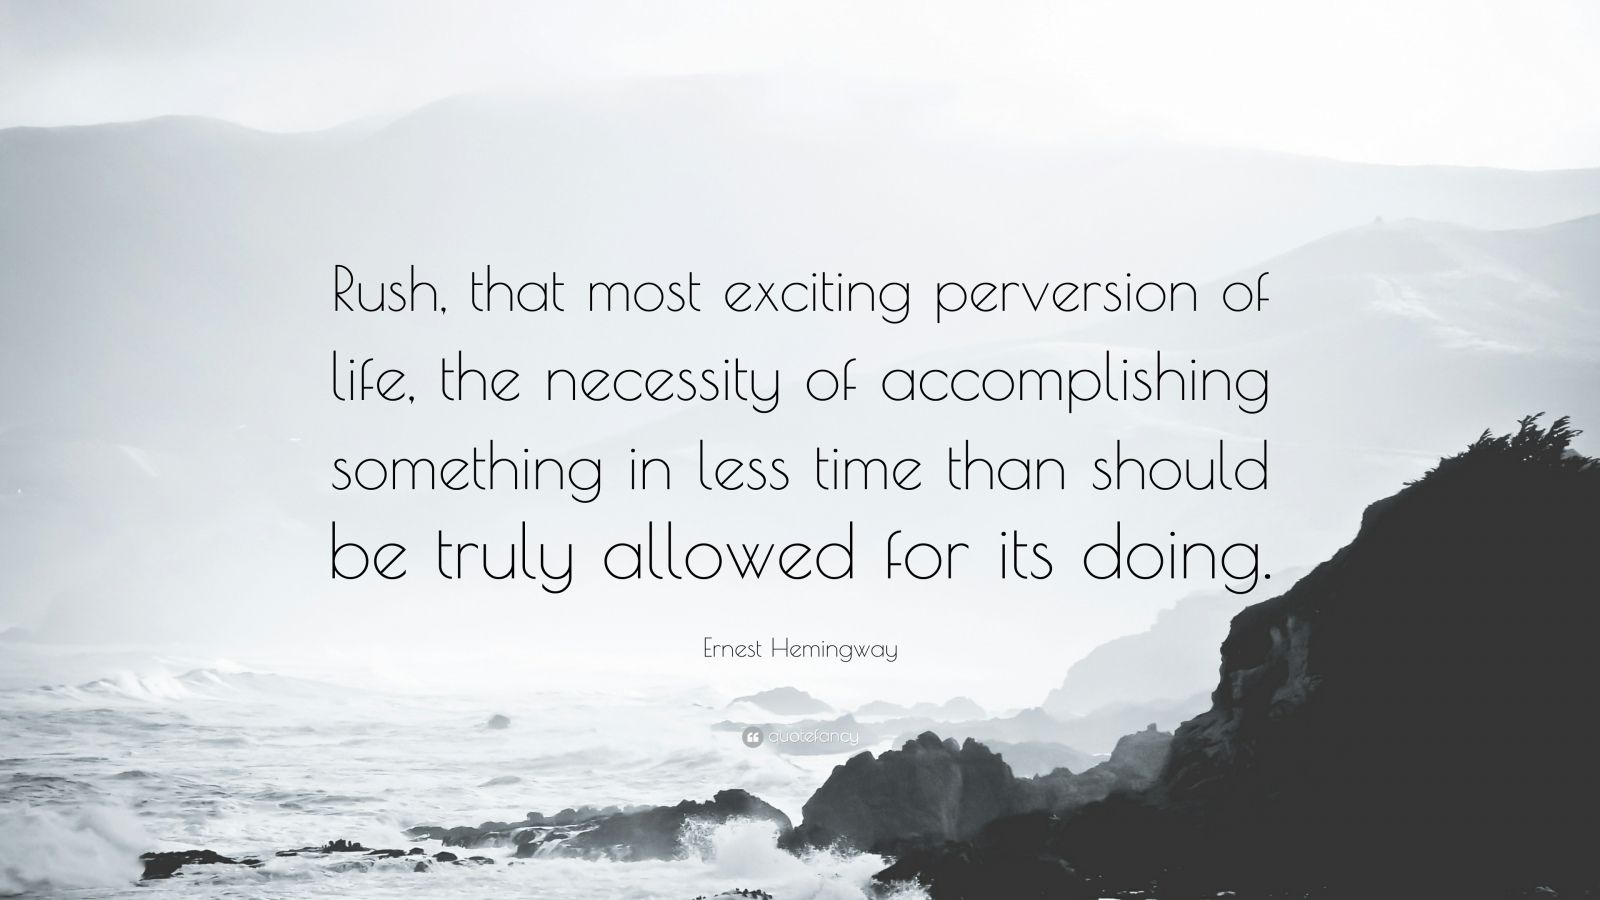 """Ernest Hemingway Quote: """"Rush, that most exciting perversion of life, the necessity of accomplishing something in less time than should be truly allowed for its doing."""""""